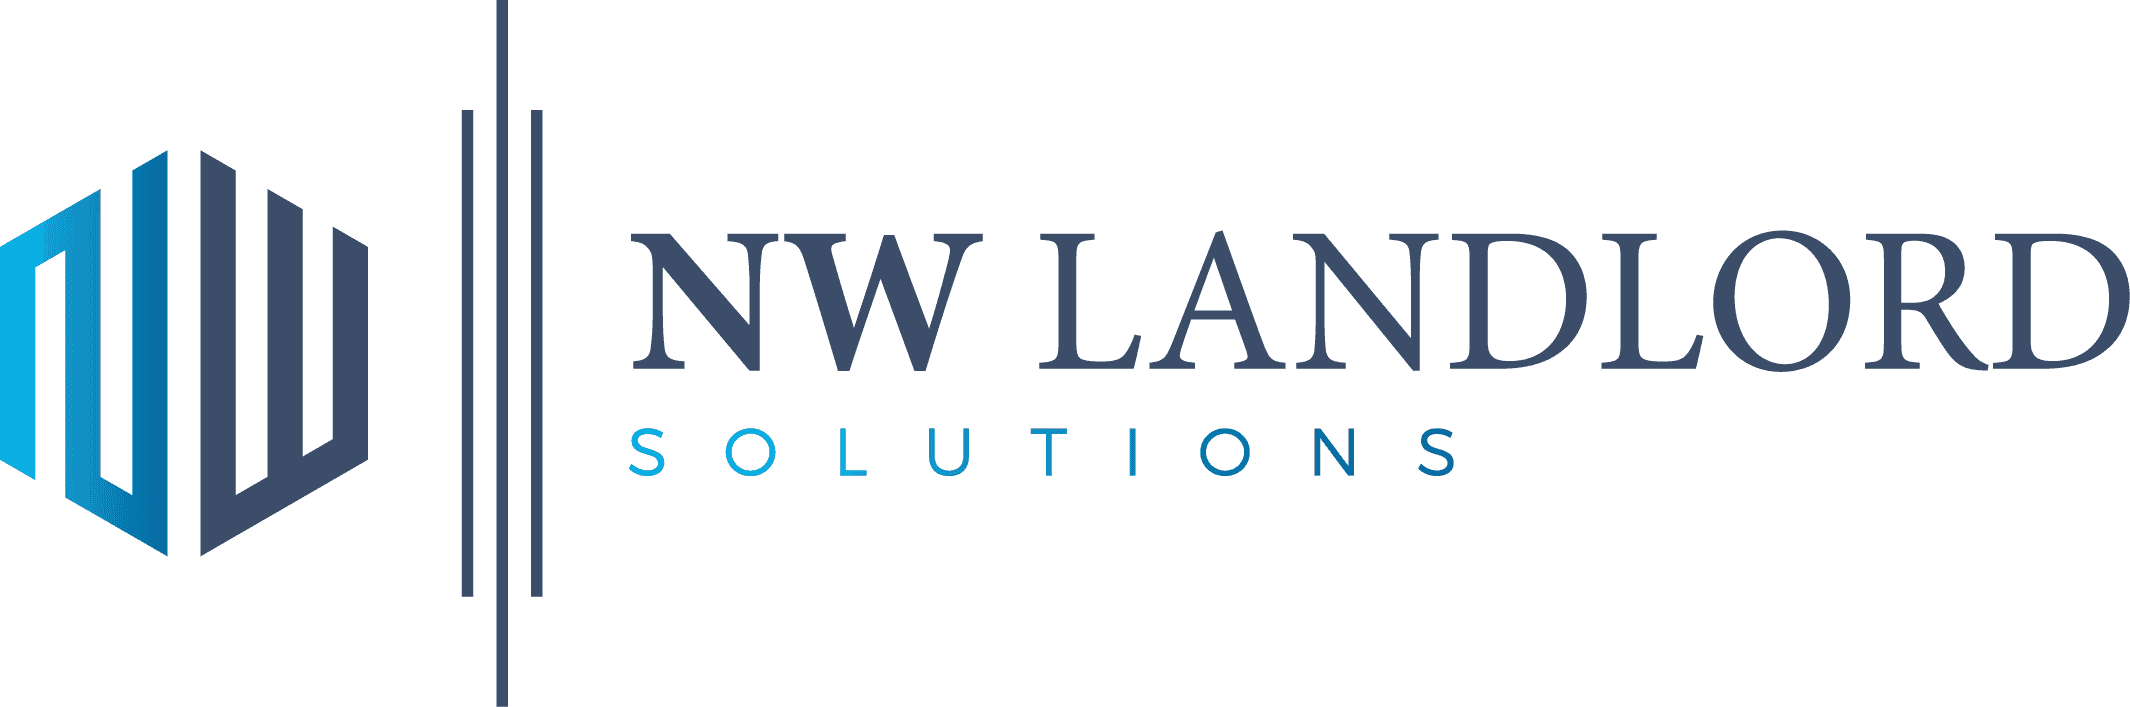 NW Landlord Solutions